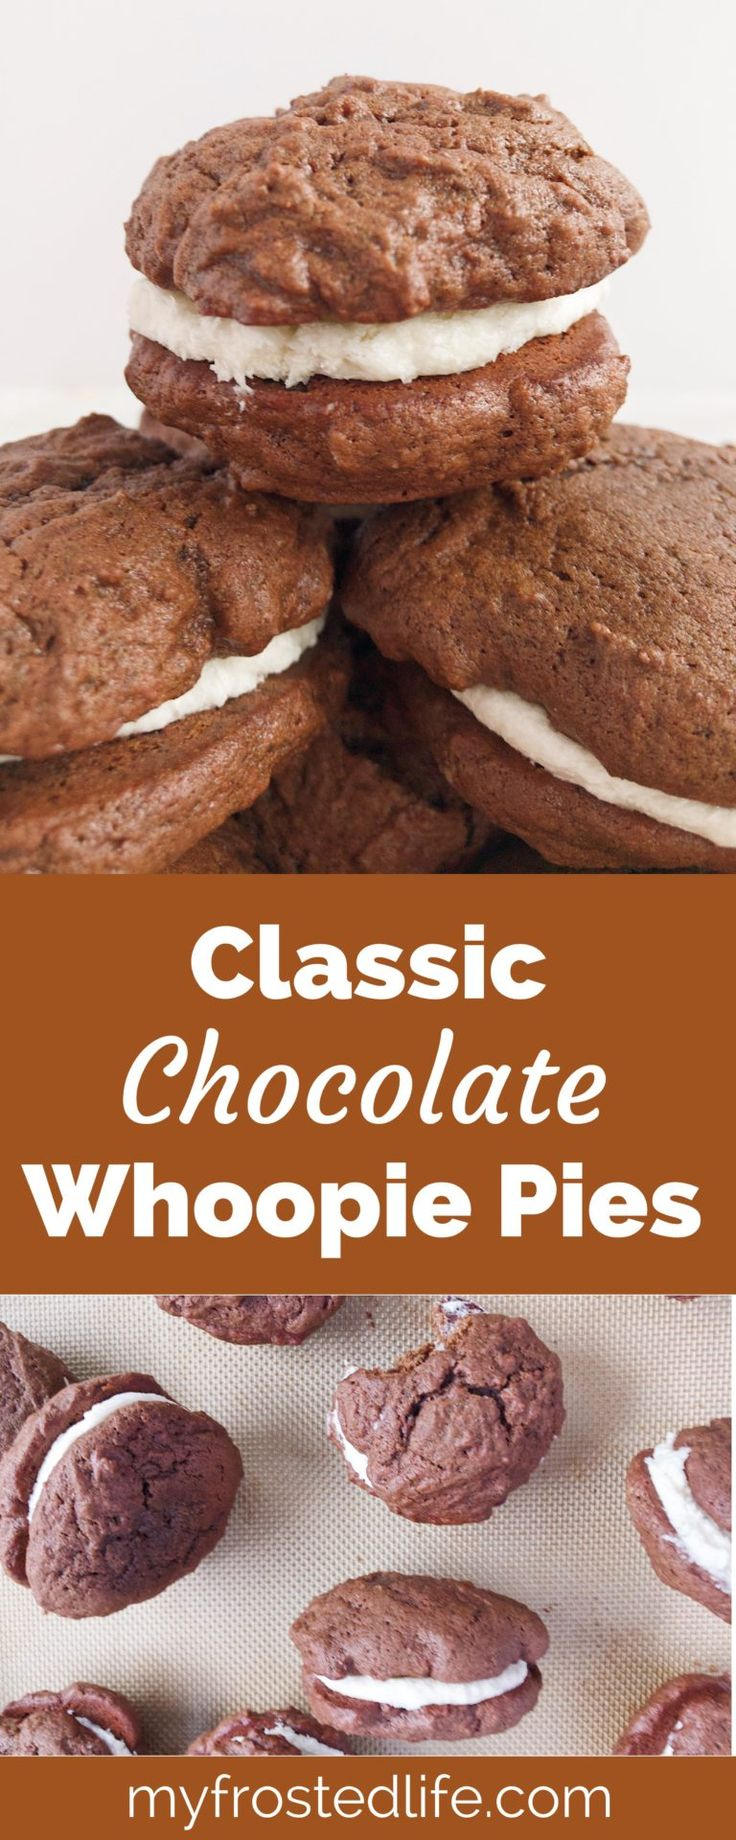 Chocolate Whoopie Pies – A childhood classic, these traditional whoopee pies feature an easy vanilla buttercream frosting sandwiched in between two chocolate cookies made from scratch. Find out how to make the best homemade whoopie pies with this recipe!